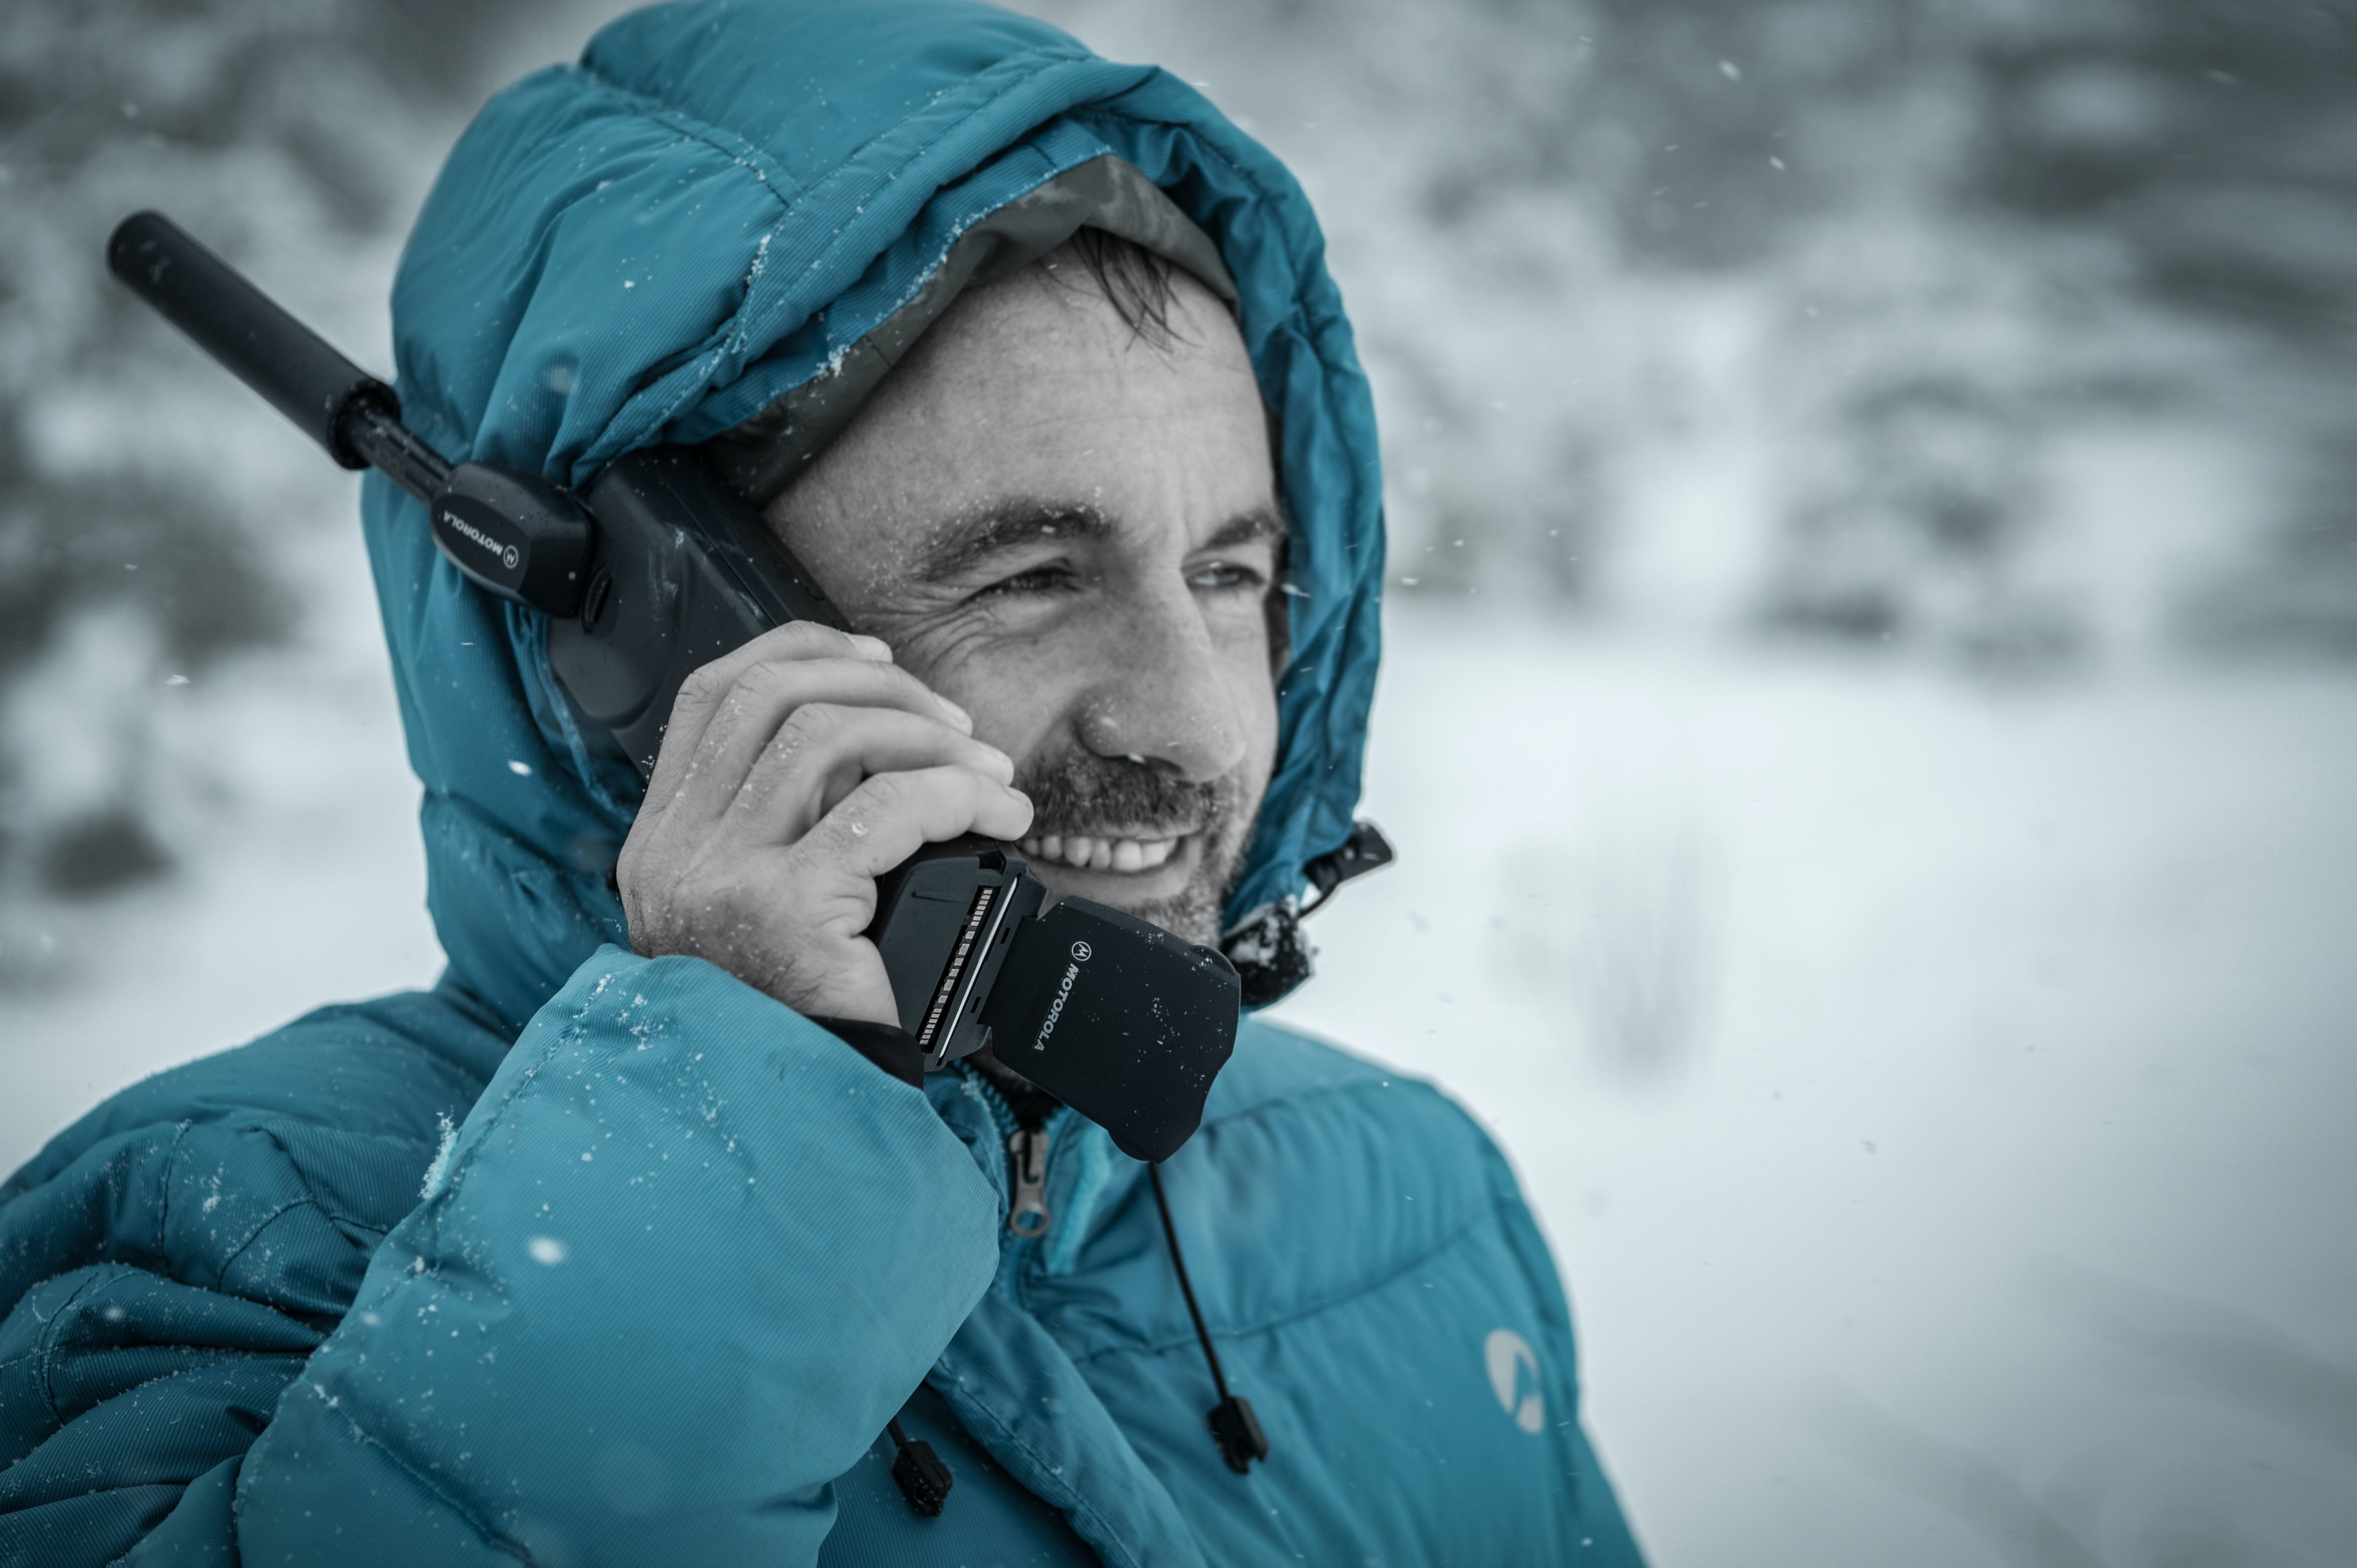 Man in Blue Hoodie Jacket Holding Black Radio Receiver during Snowy Day Time